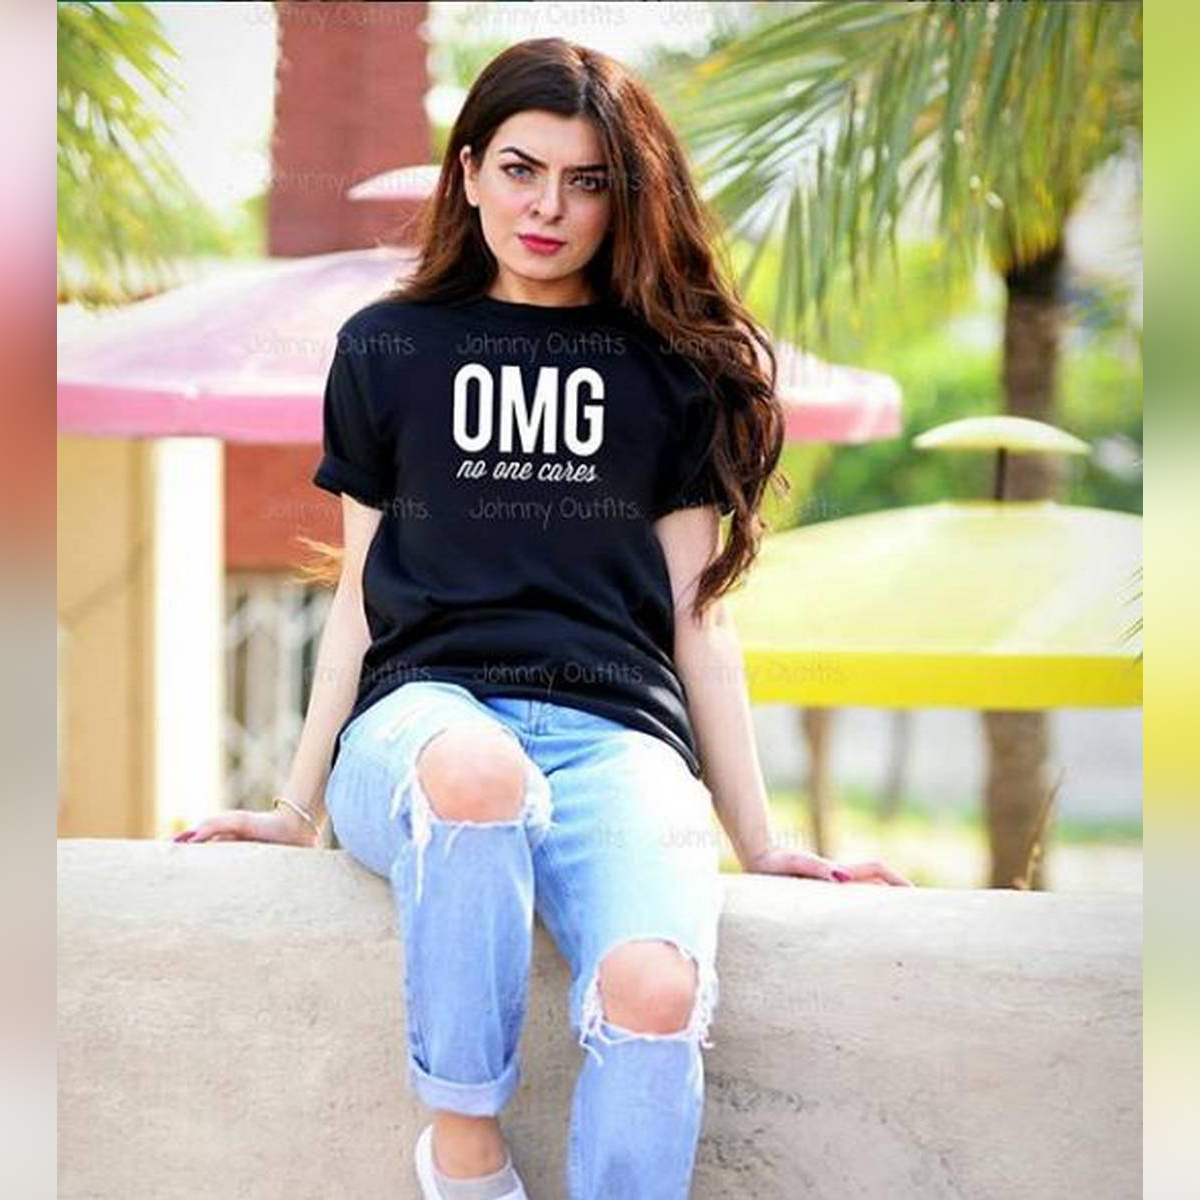 No body cares Black Half Sleeve Printed T-shirt For Women Casual Cotton tshirts For Lady Top Tee -11192019